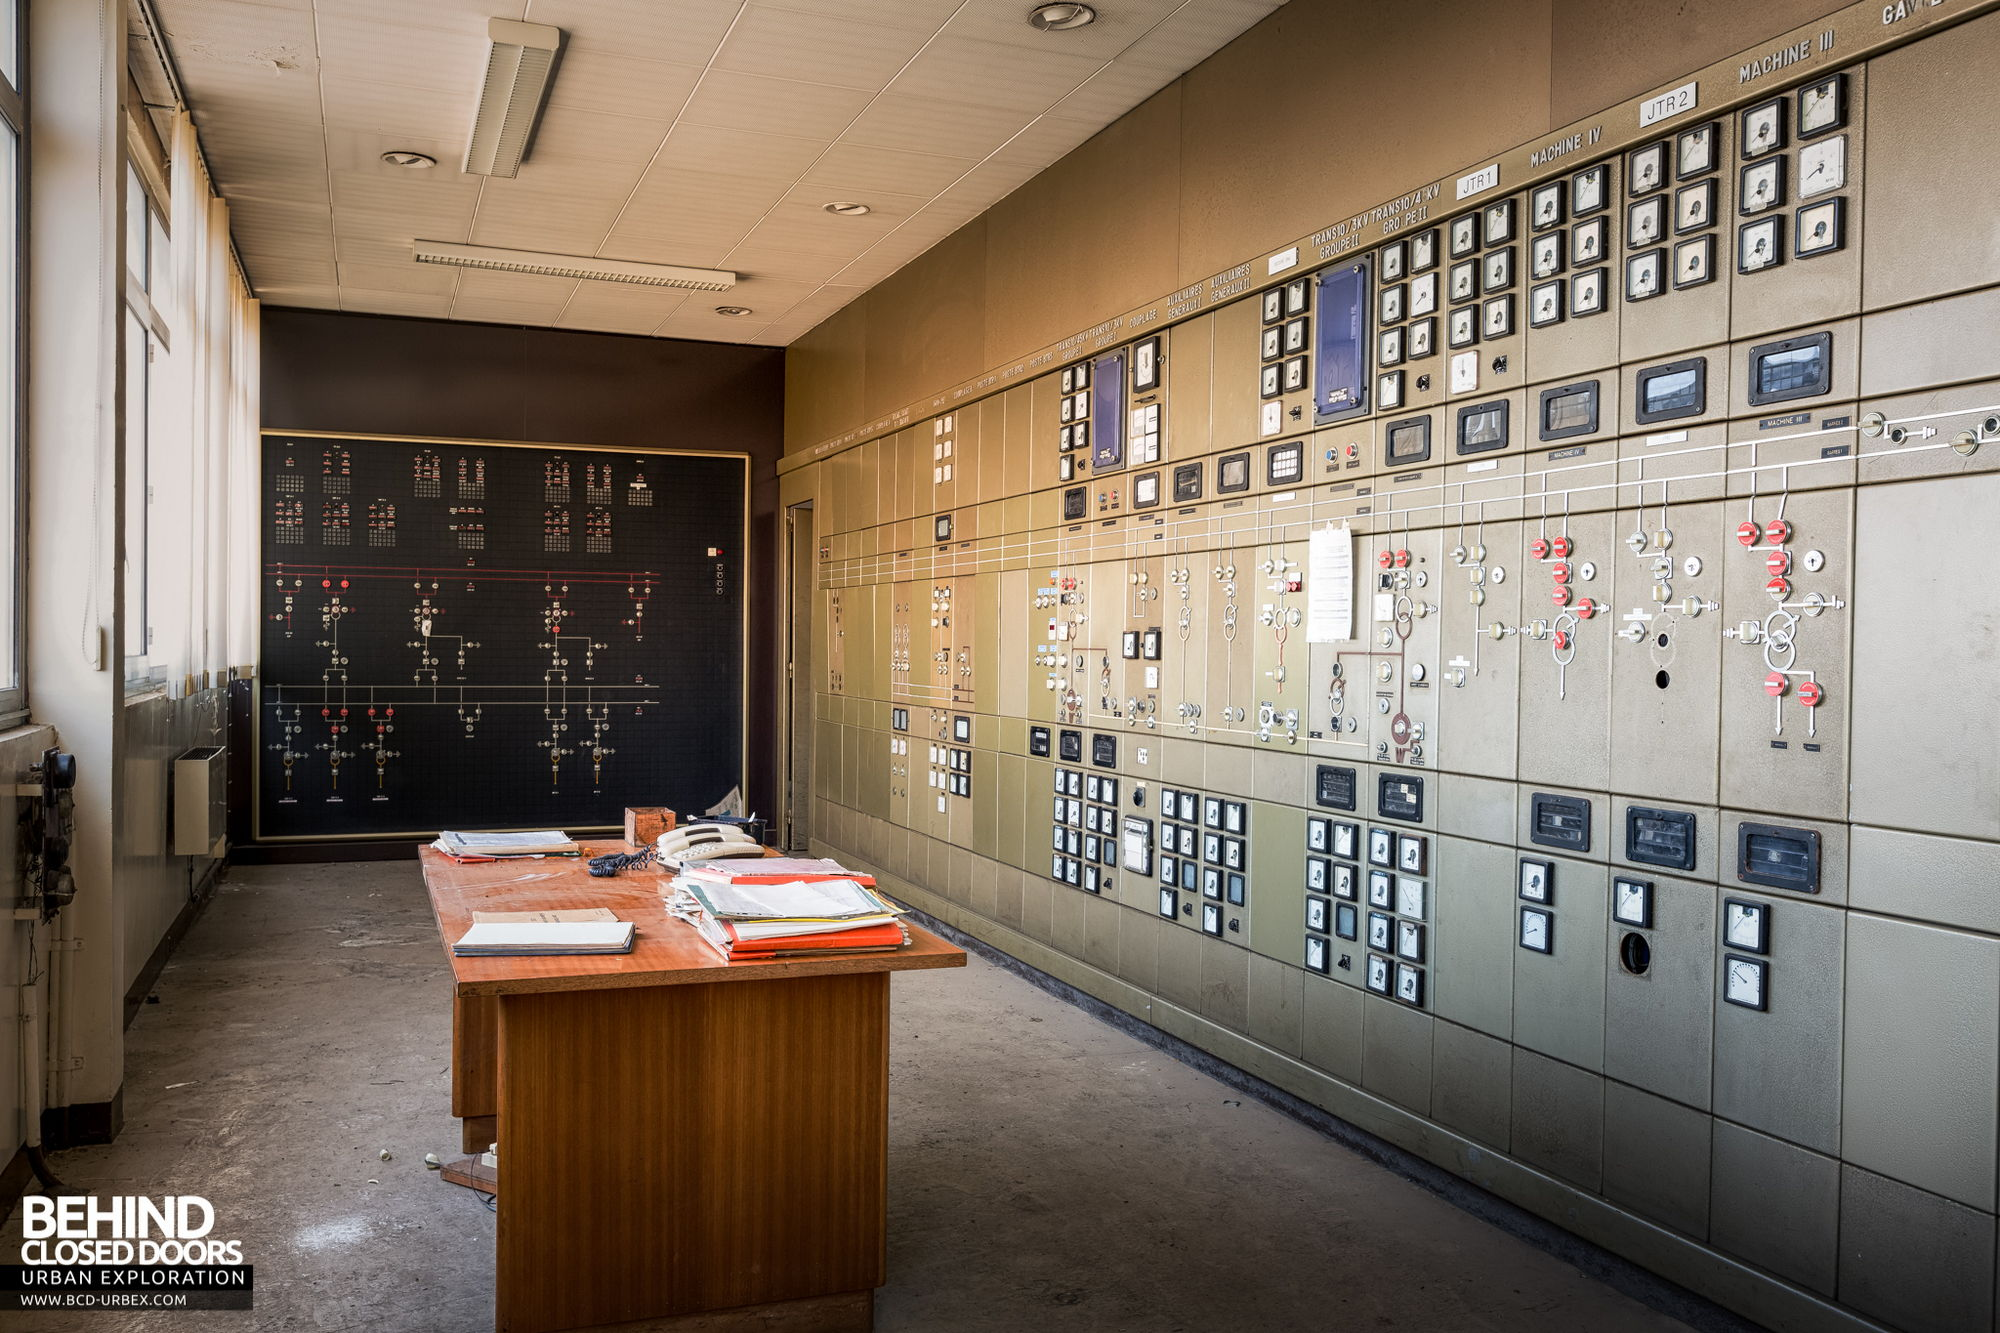 Stora Enso, Corbehem - Sub station control room and distribution panel